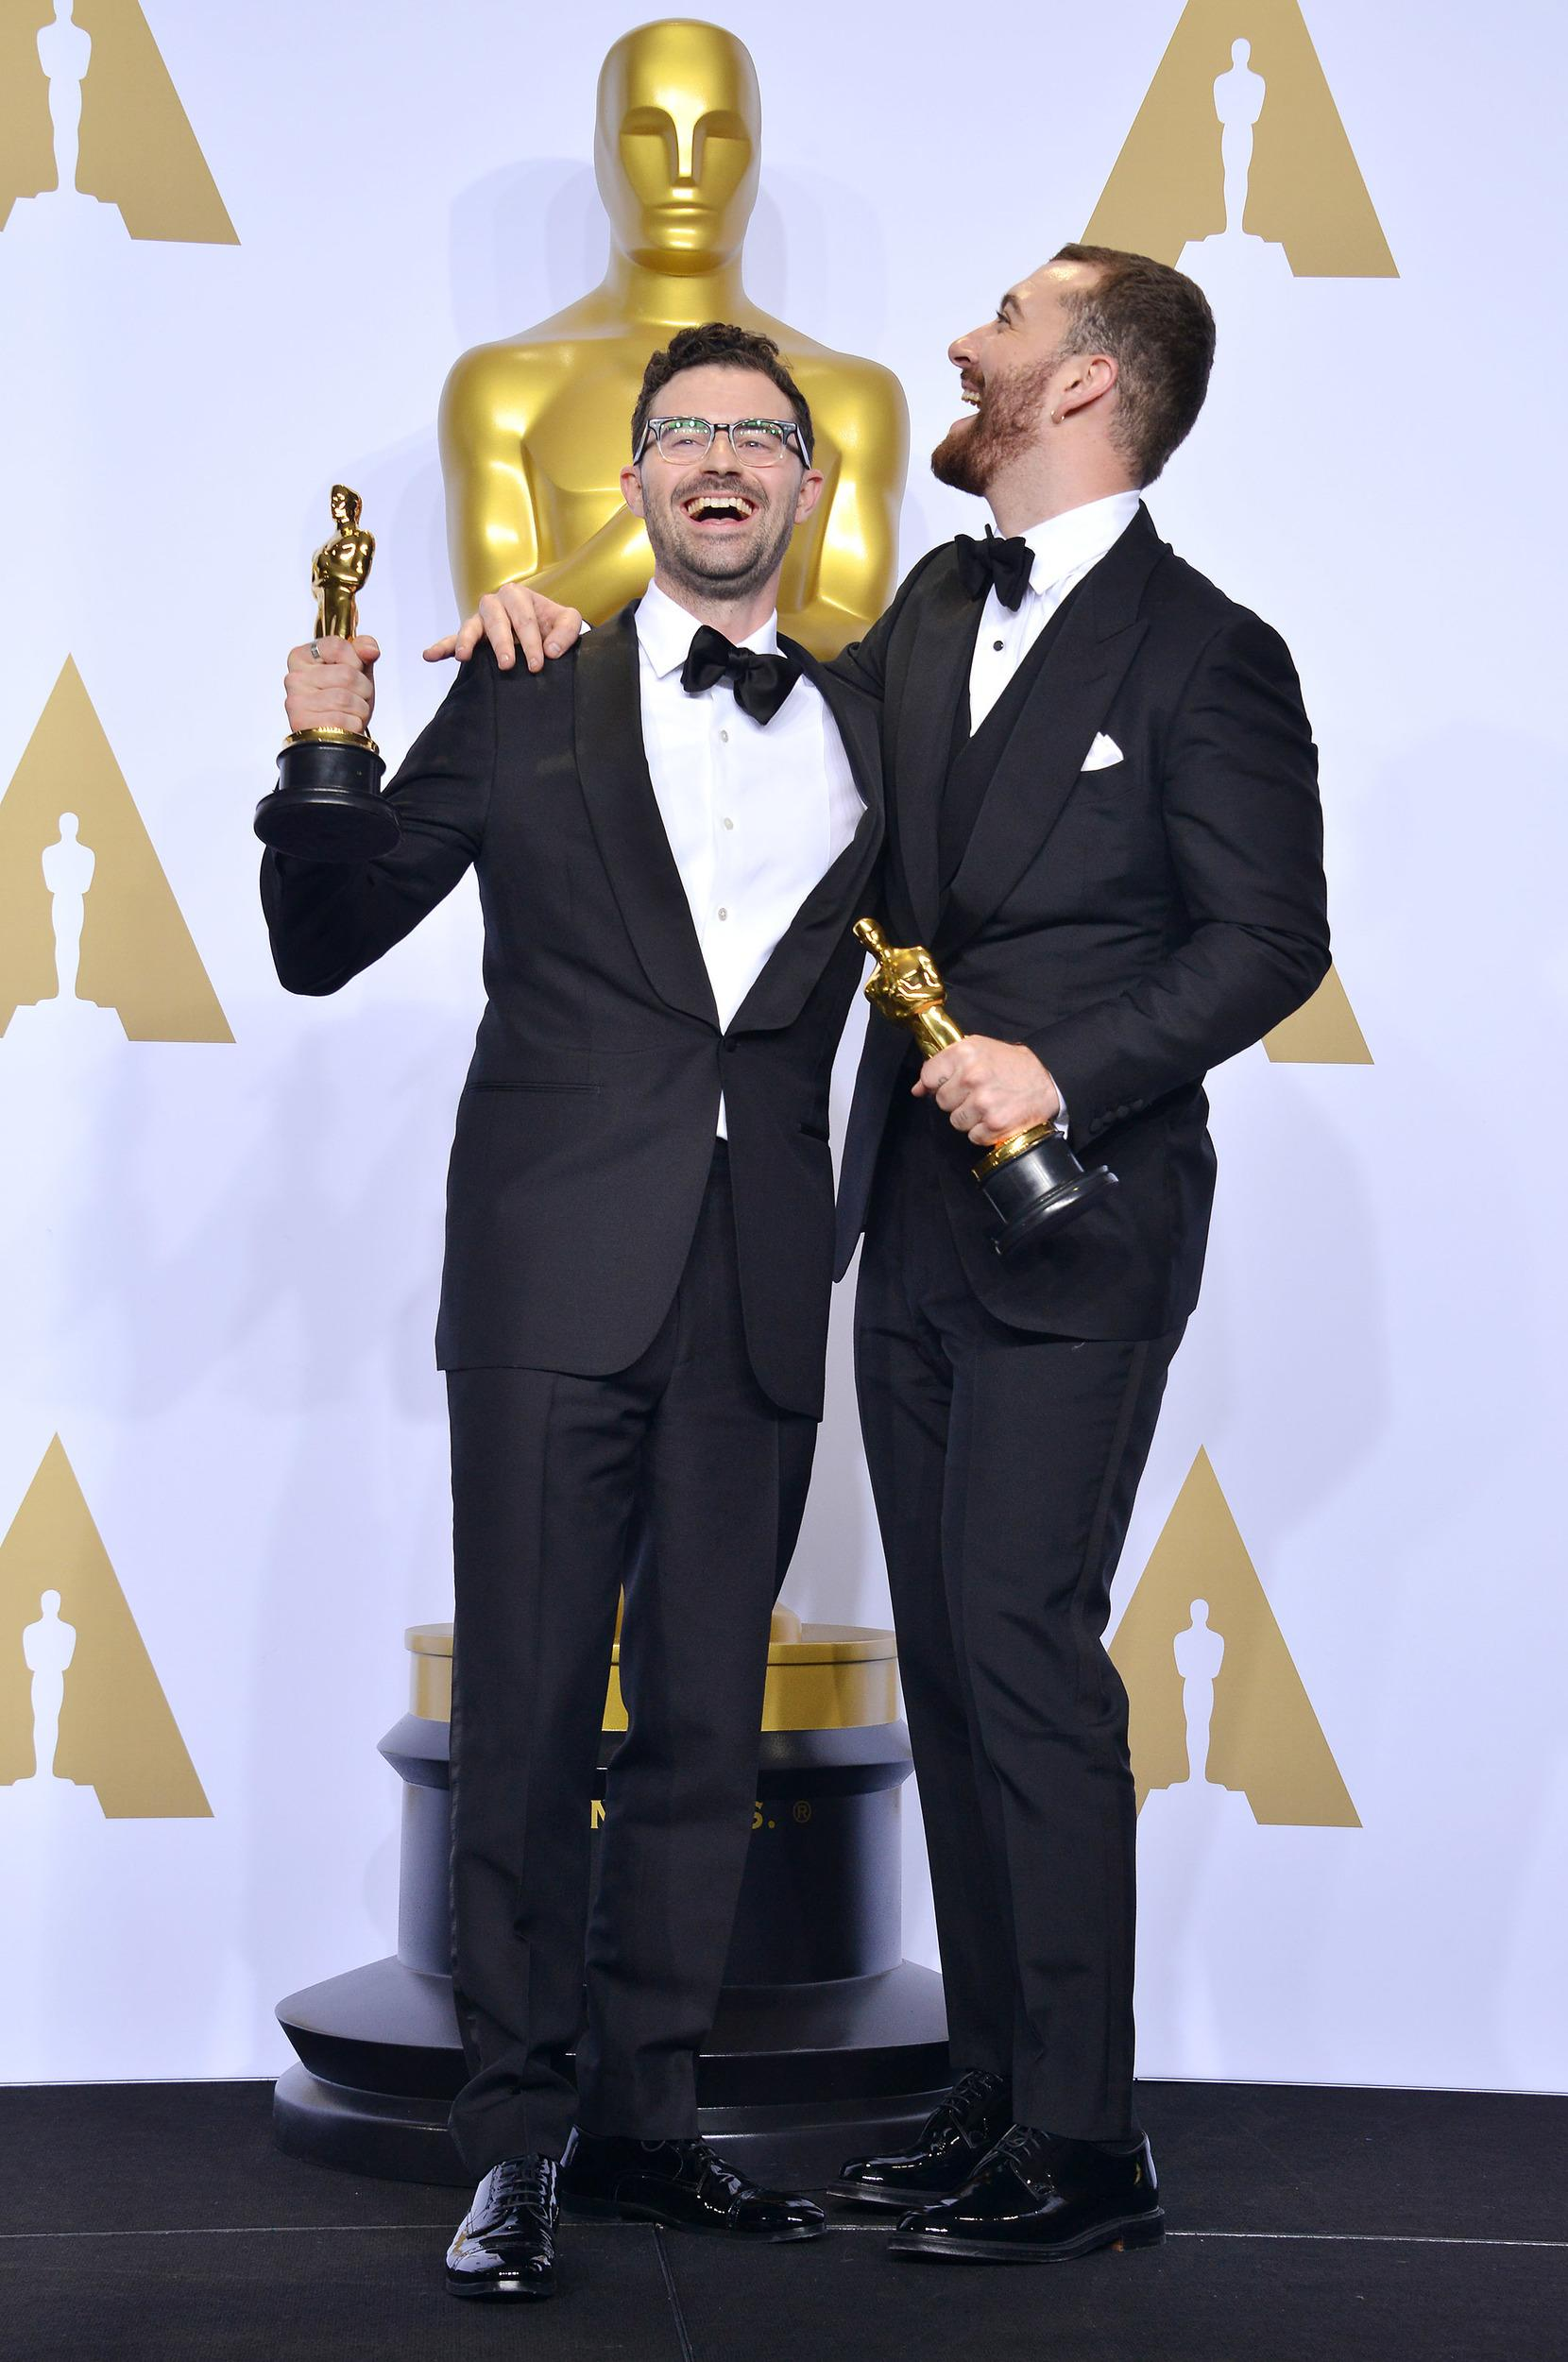 Jimmy Napes and Sam Smith in the Press Room at the 88th Academy Awards Ceremony held at the Dolby Theatre in Hollywood, California on Sunday, February 28, 2016 (Photo By Sthanlee B. Mirador)